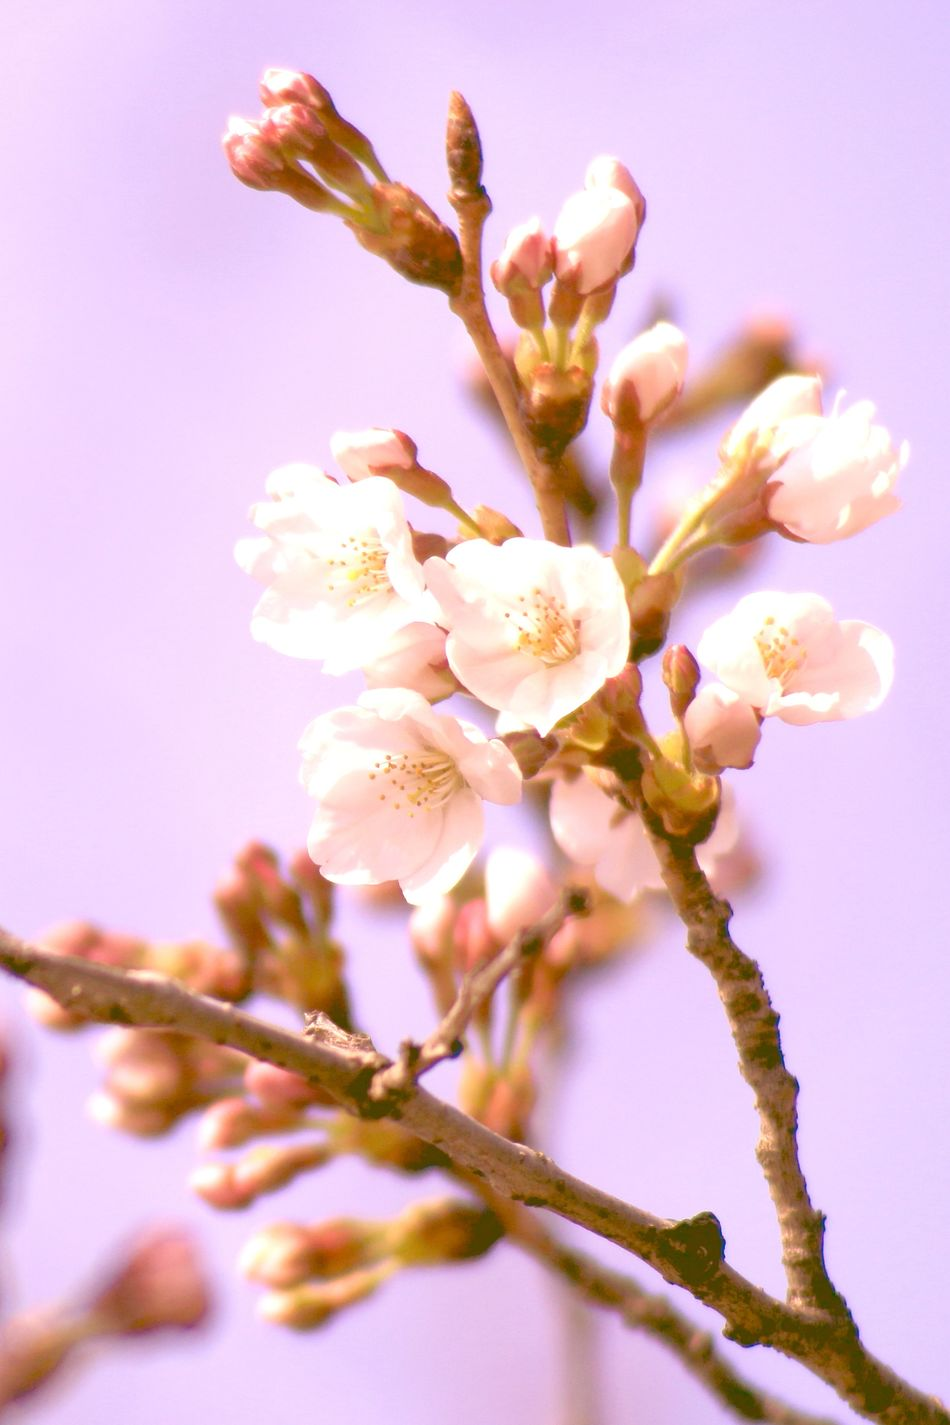 Cherry blossom blooming declaration Almond Tree Beauty In Nature Blooming Declaration Blossom Branch Cherry Blossoms Close-up Day Flower Flower Head Fragility Freshness Growth Japanese Cherry Tree. Millennial Pink Nature No People Outdoors Petal Pink Color Plant Springtime Stamen Tree Twig